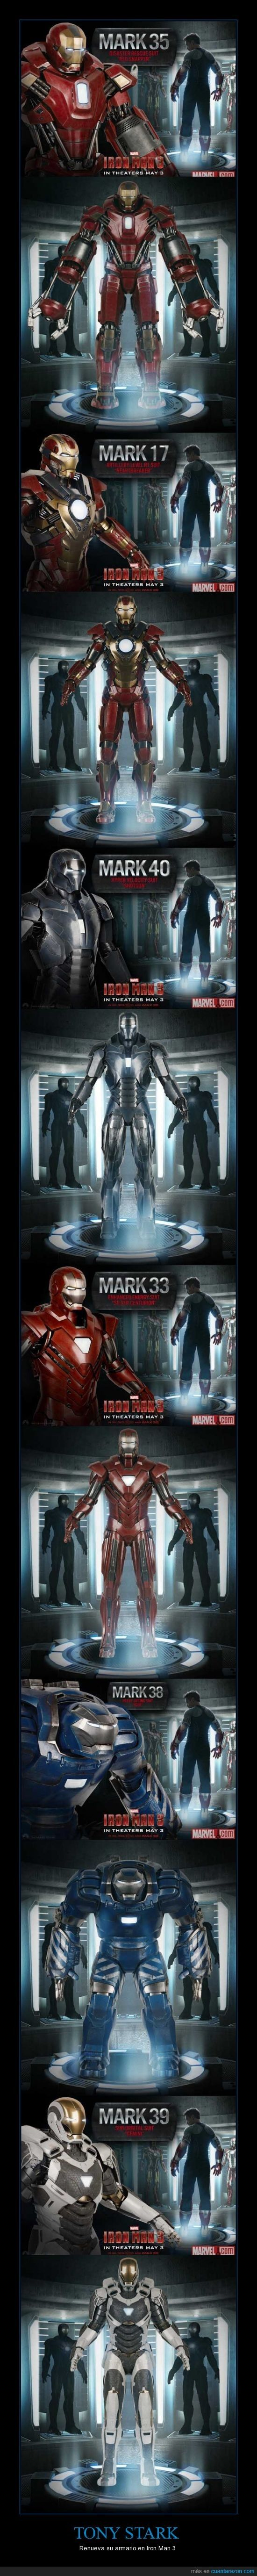 a character analysis of tony stark as iron man the hero in an advanced armour suit